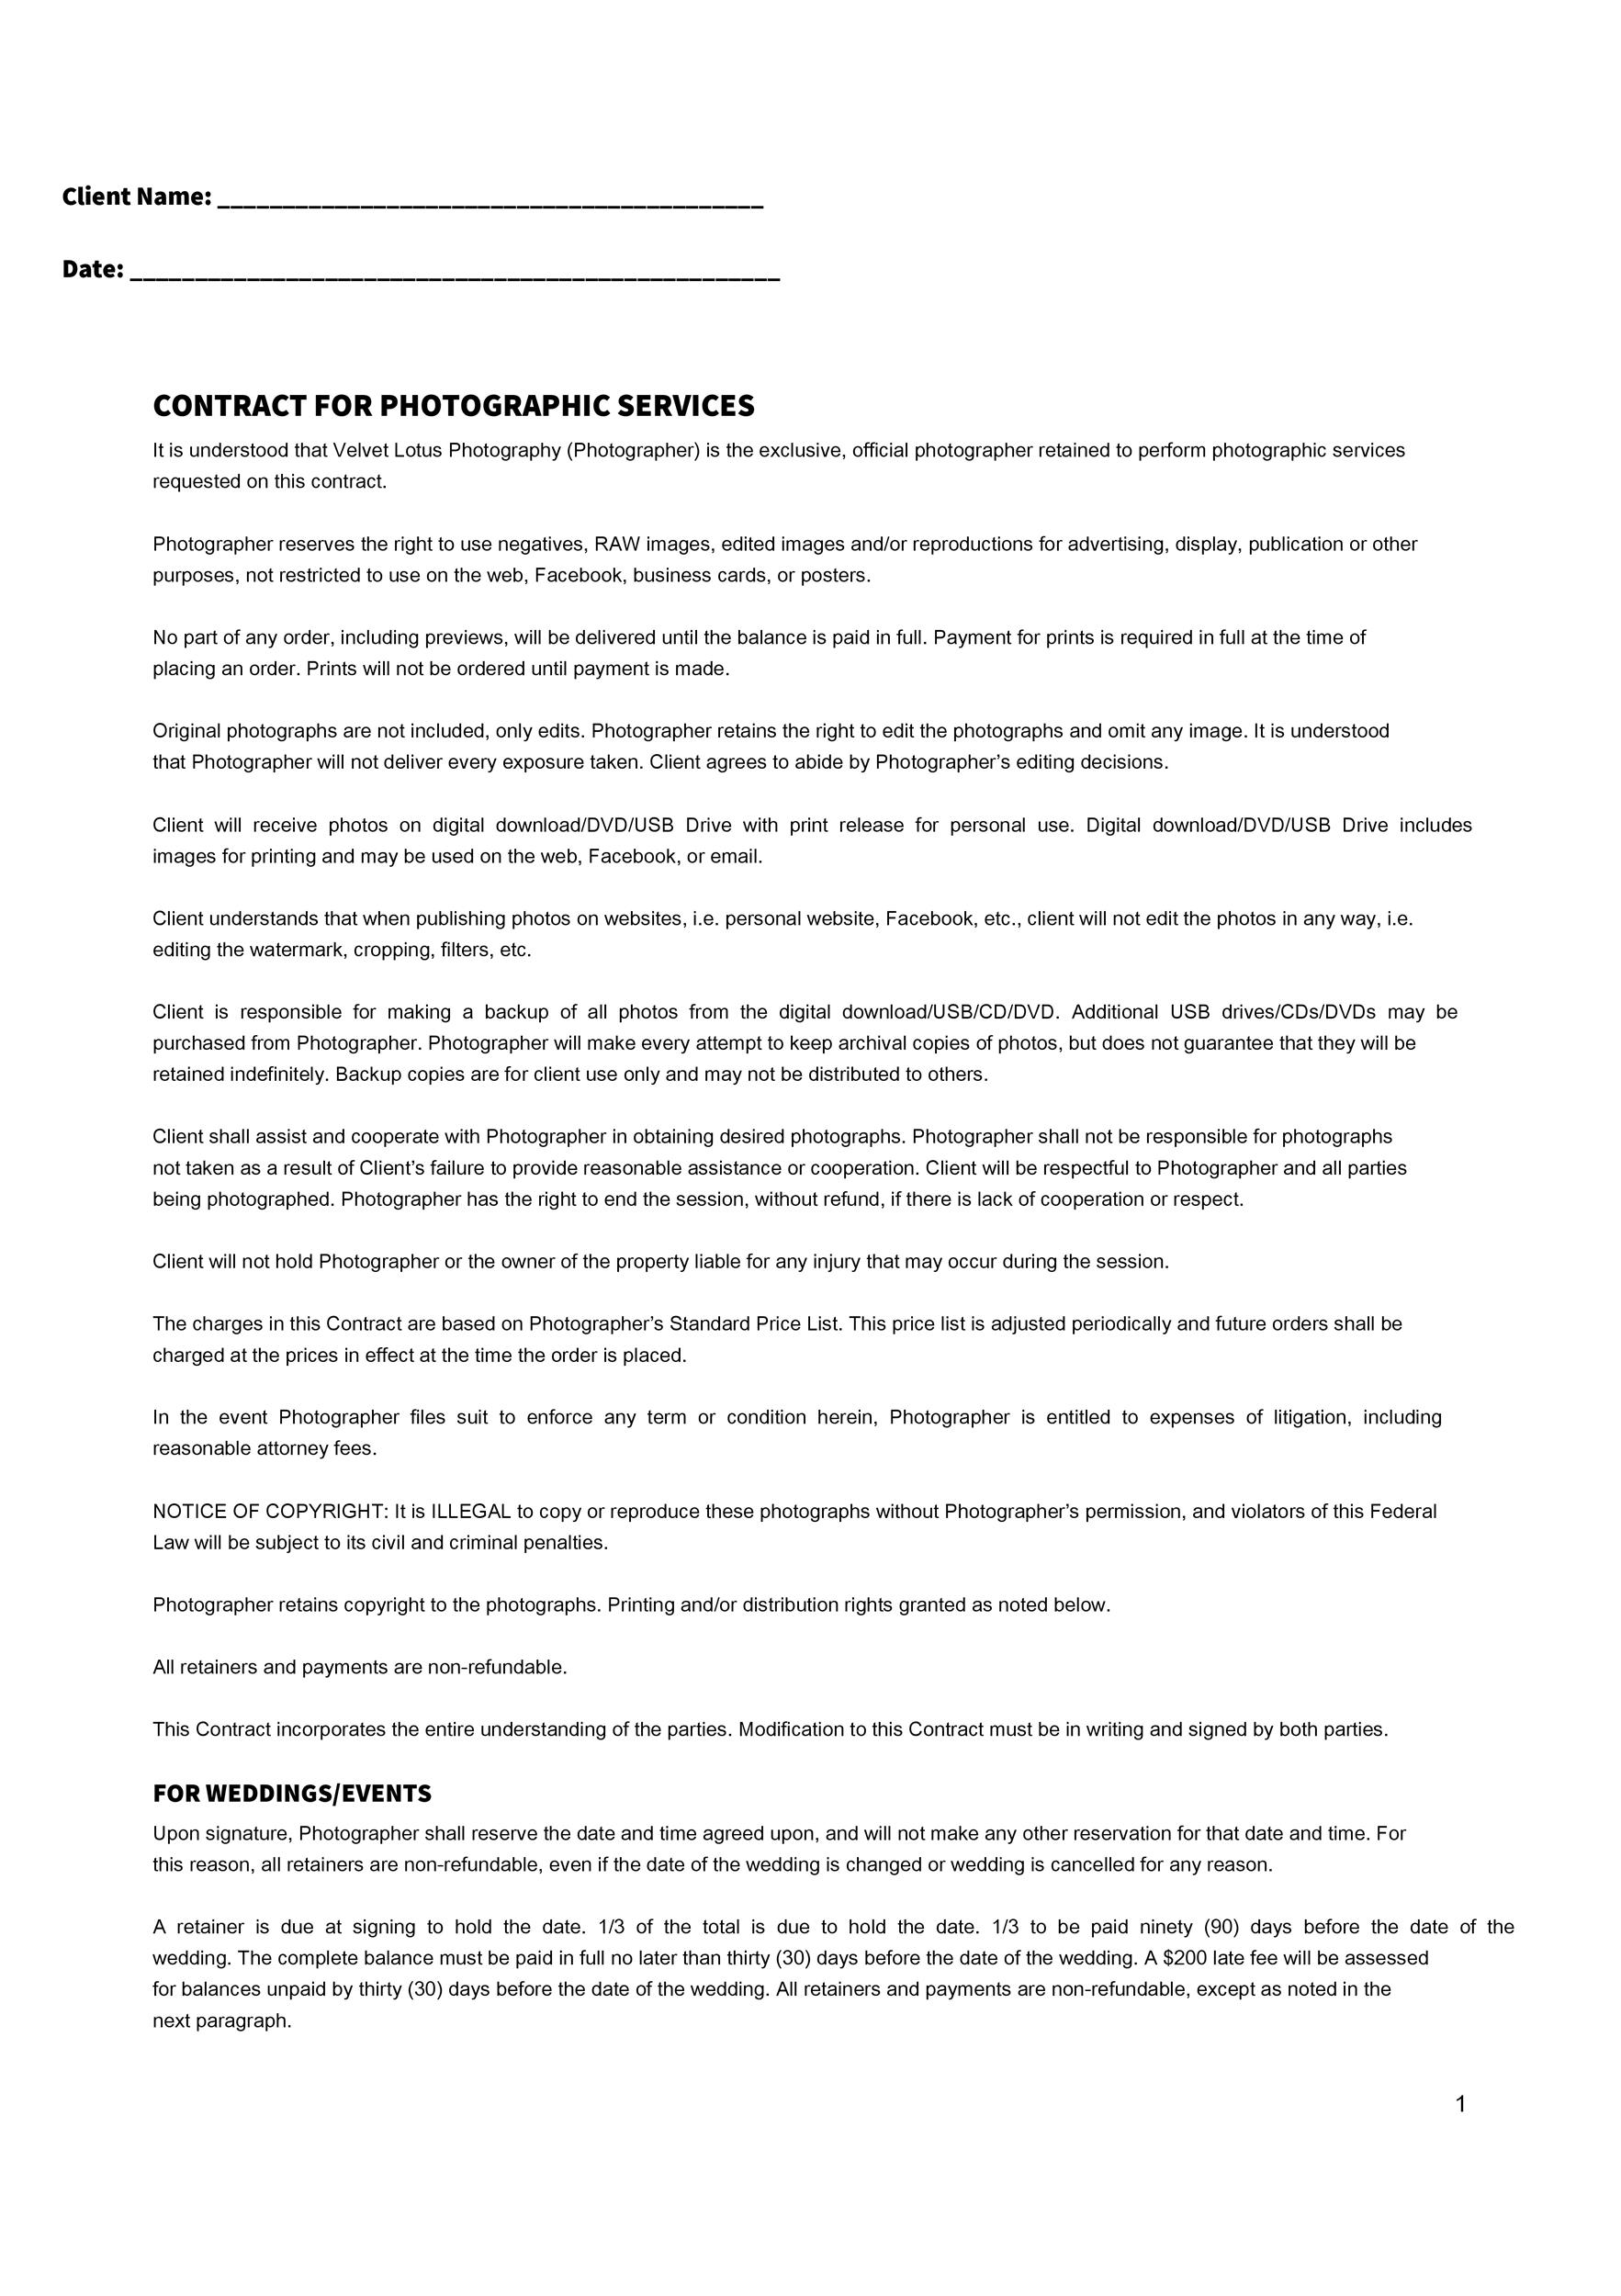 40 Great Contract Templates (Employment, Construction, Photography